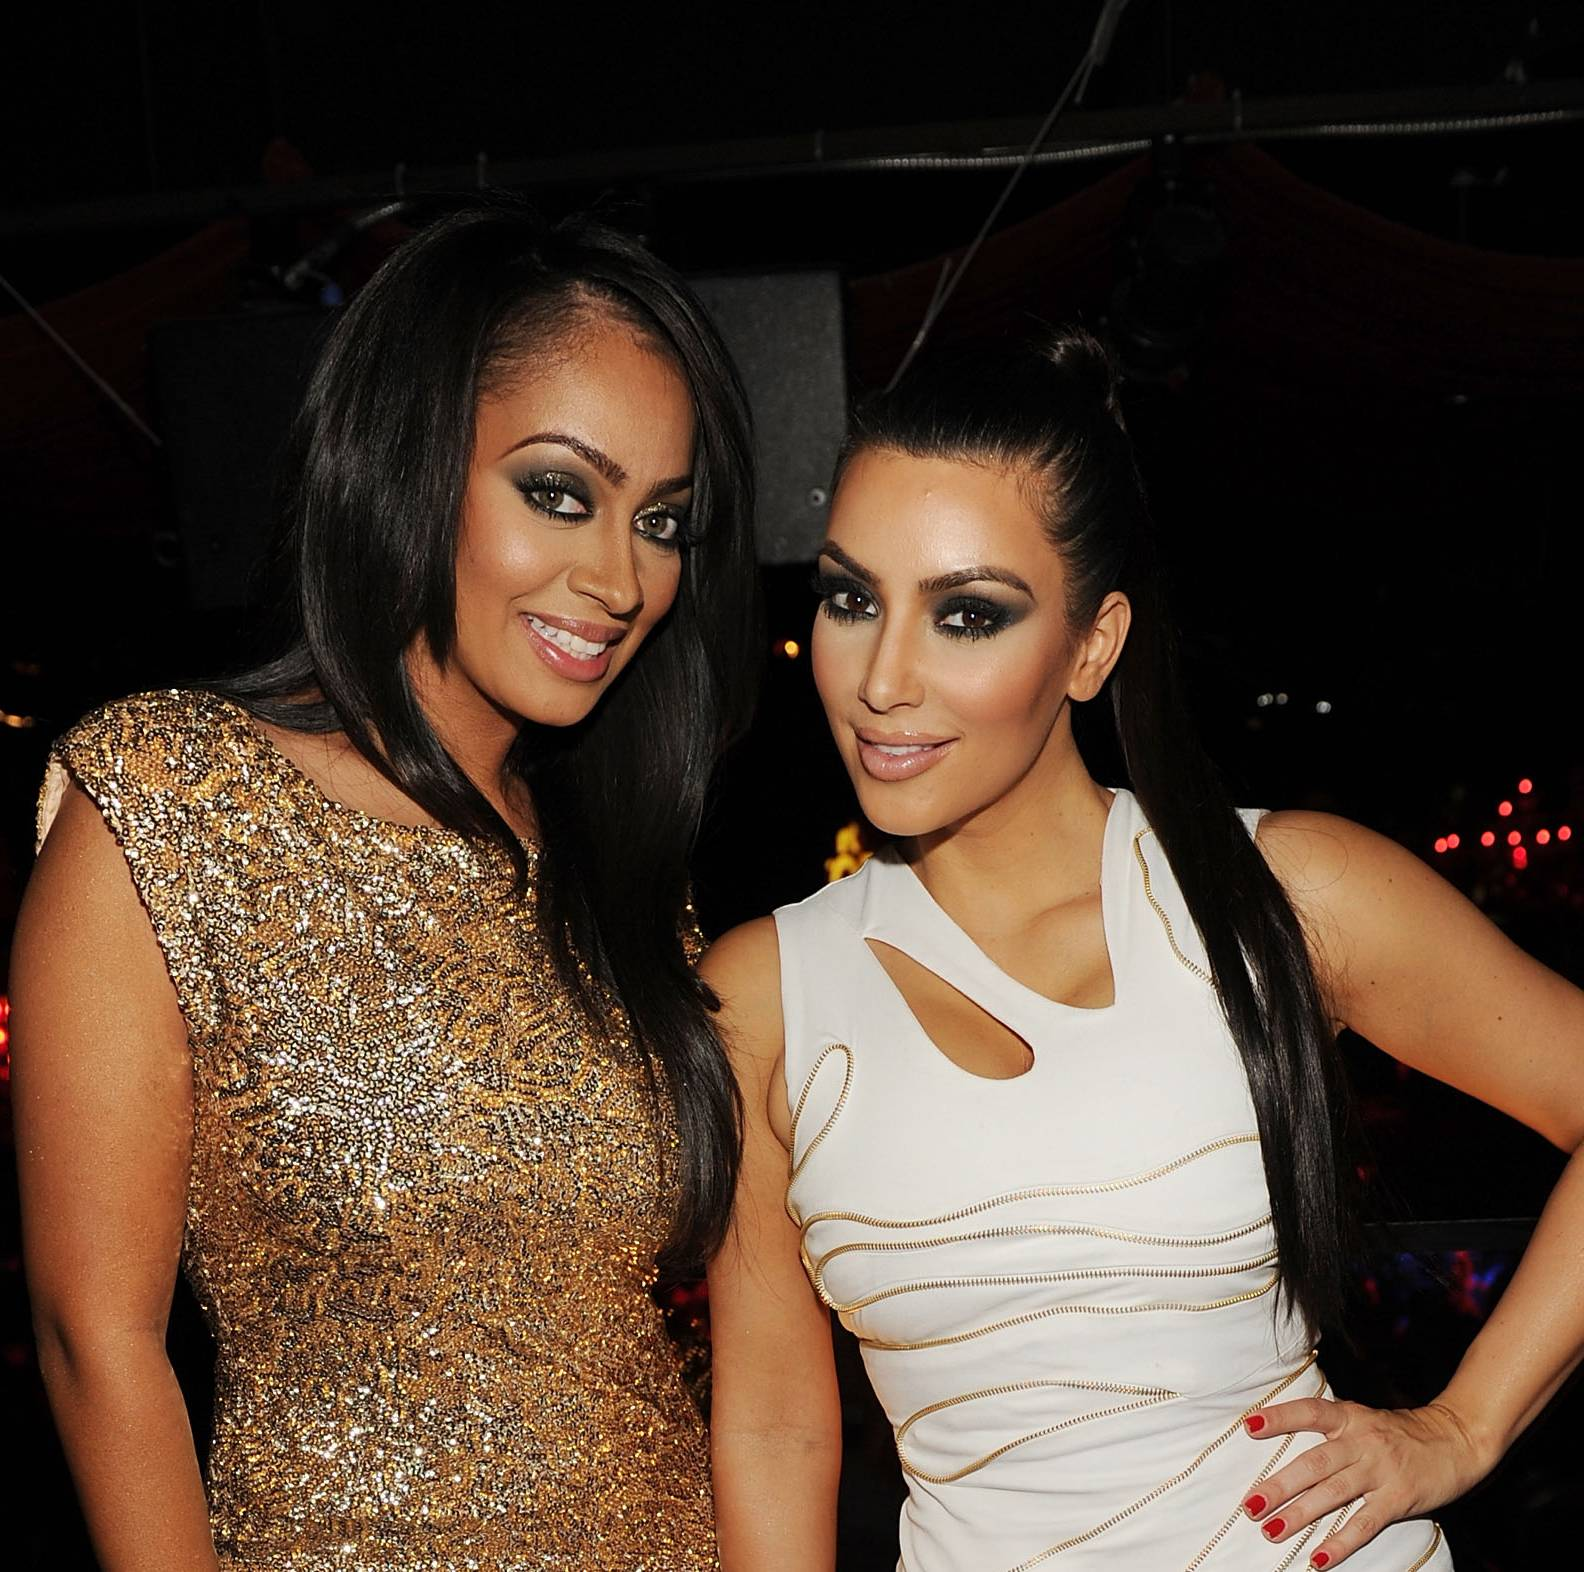 Lala AnthonyandKim Kardashian - Kim Kardashian and Lala share a love for family, mini dresses, reality shows and much more. These BFFs are always lunching, shopping and catching a courtside view together.   (Photo: Denise Truscello/WireImage)